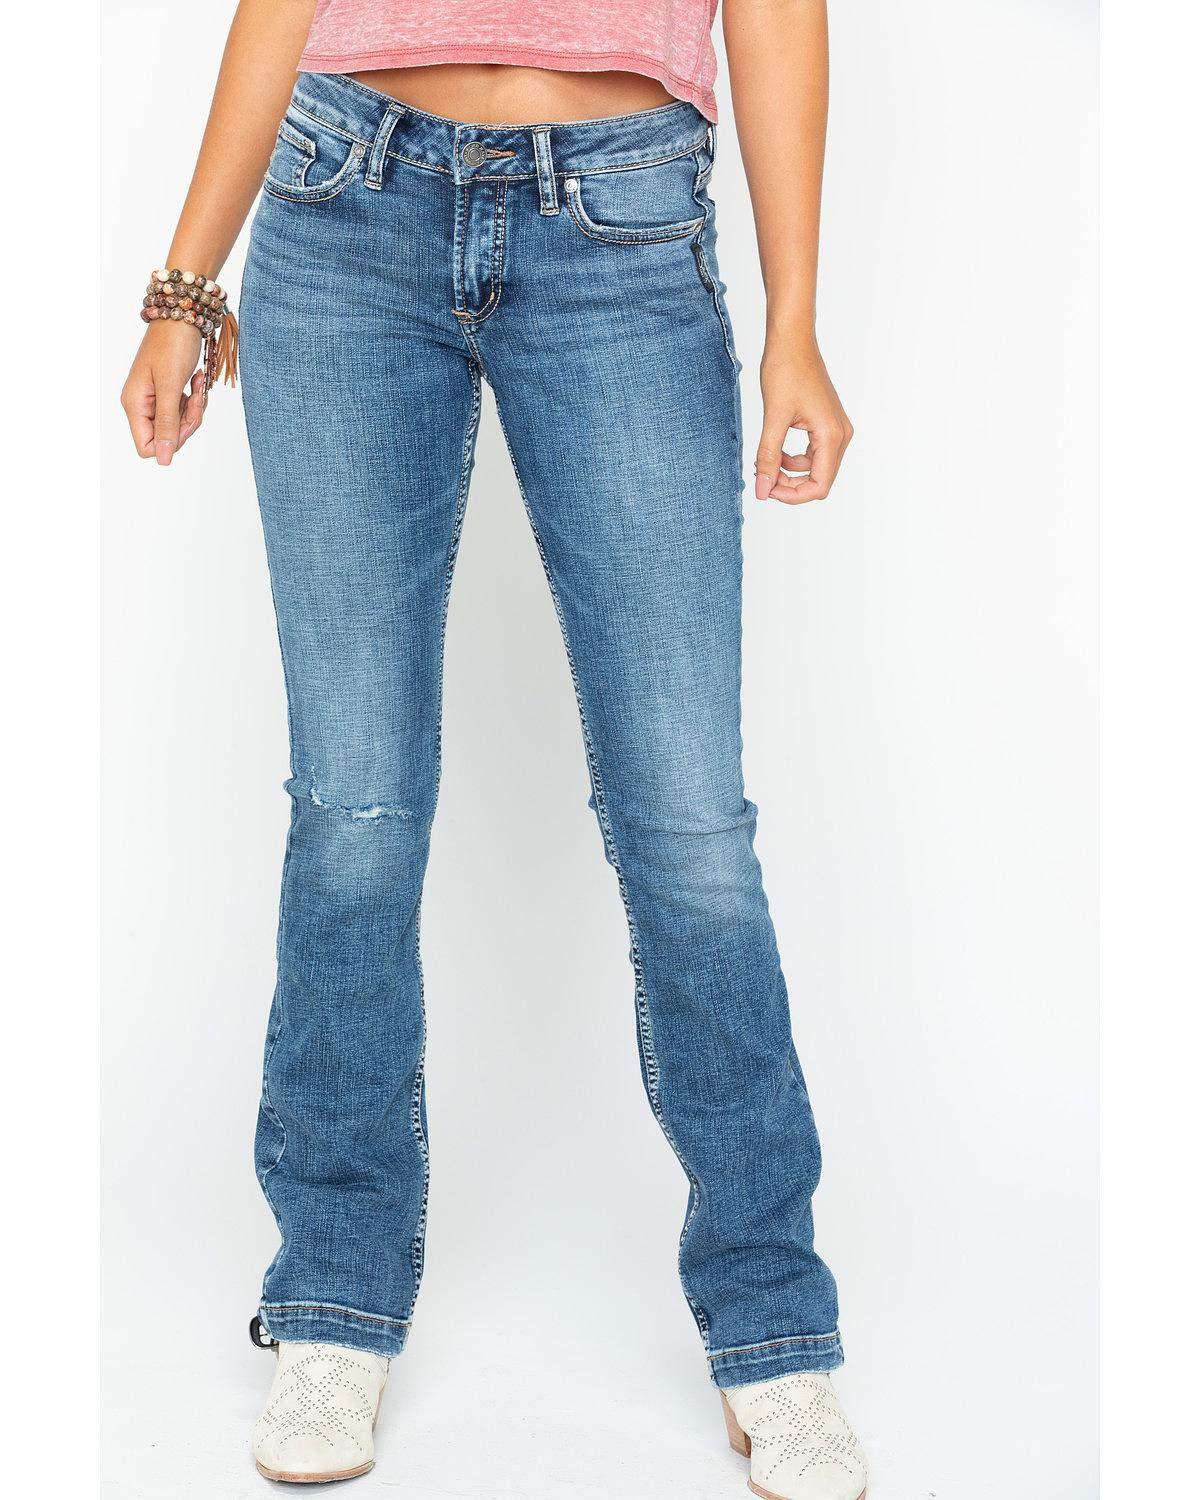 Silver Jeans Co. Women's Elyse Relaxed Fit Mid Rise Slim Bootcut Jeans, Vintage Distressed, 33x33